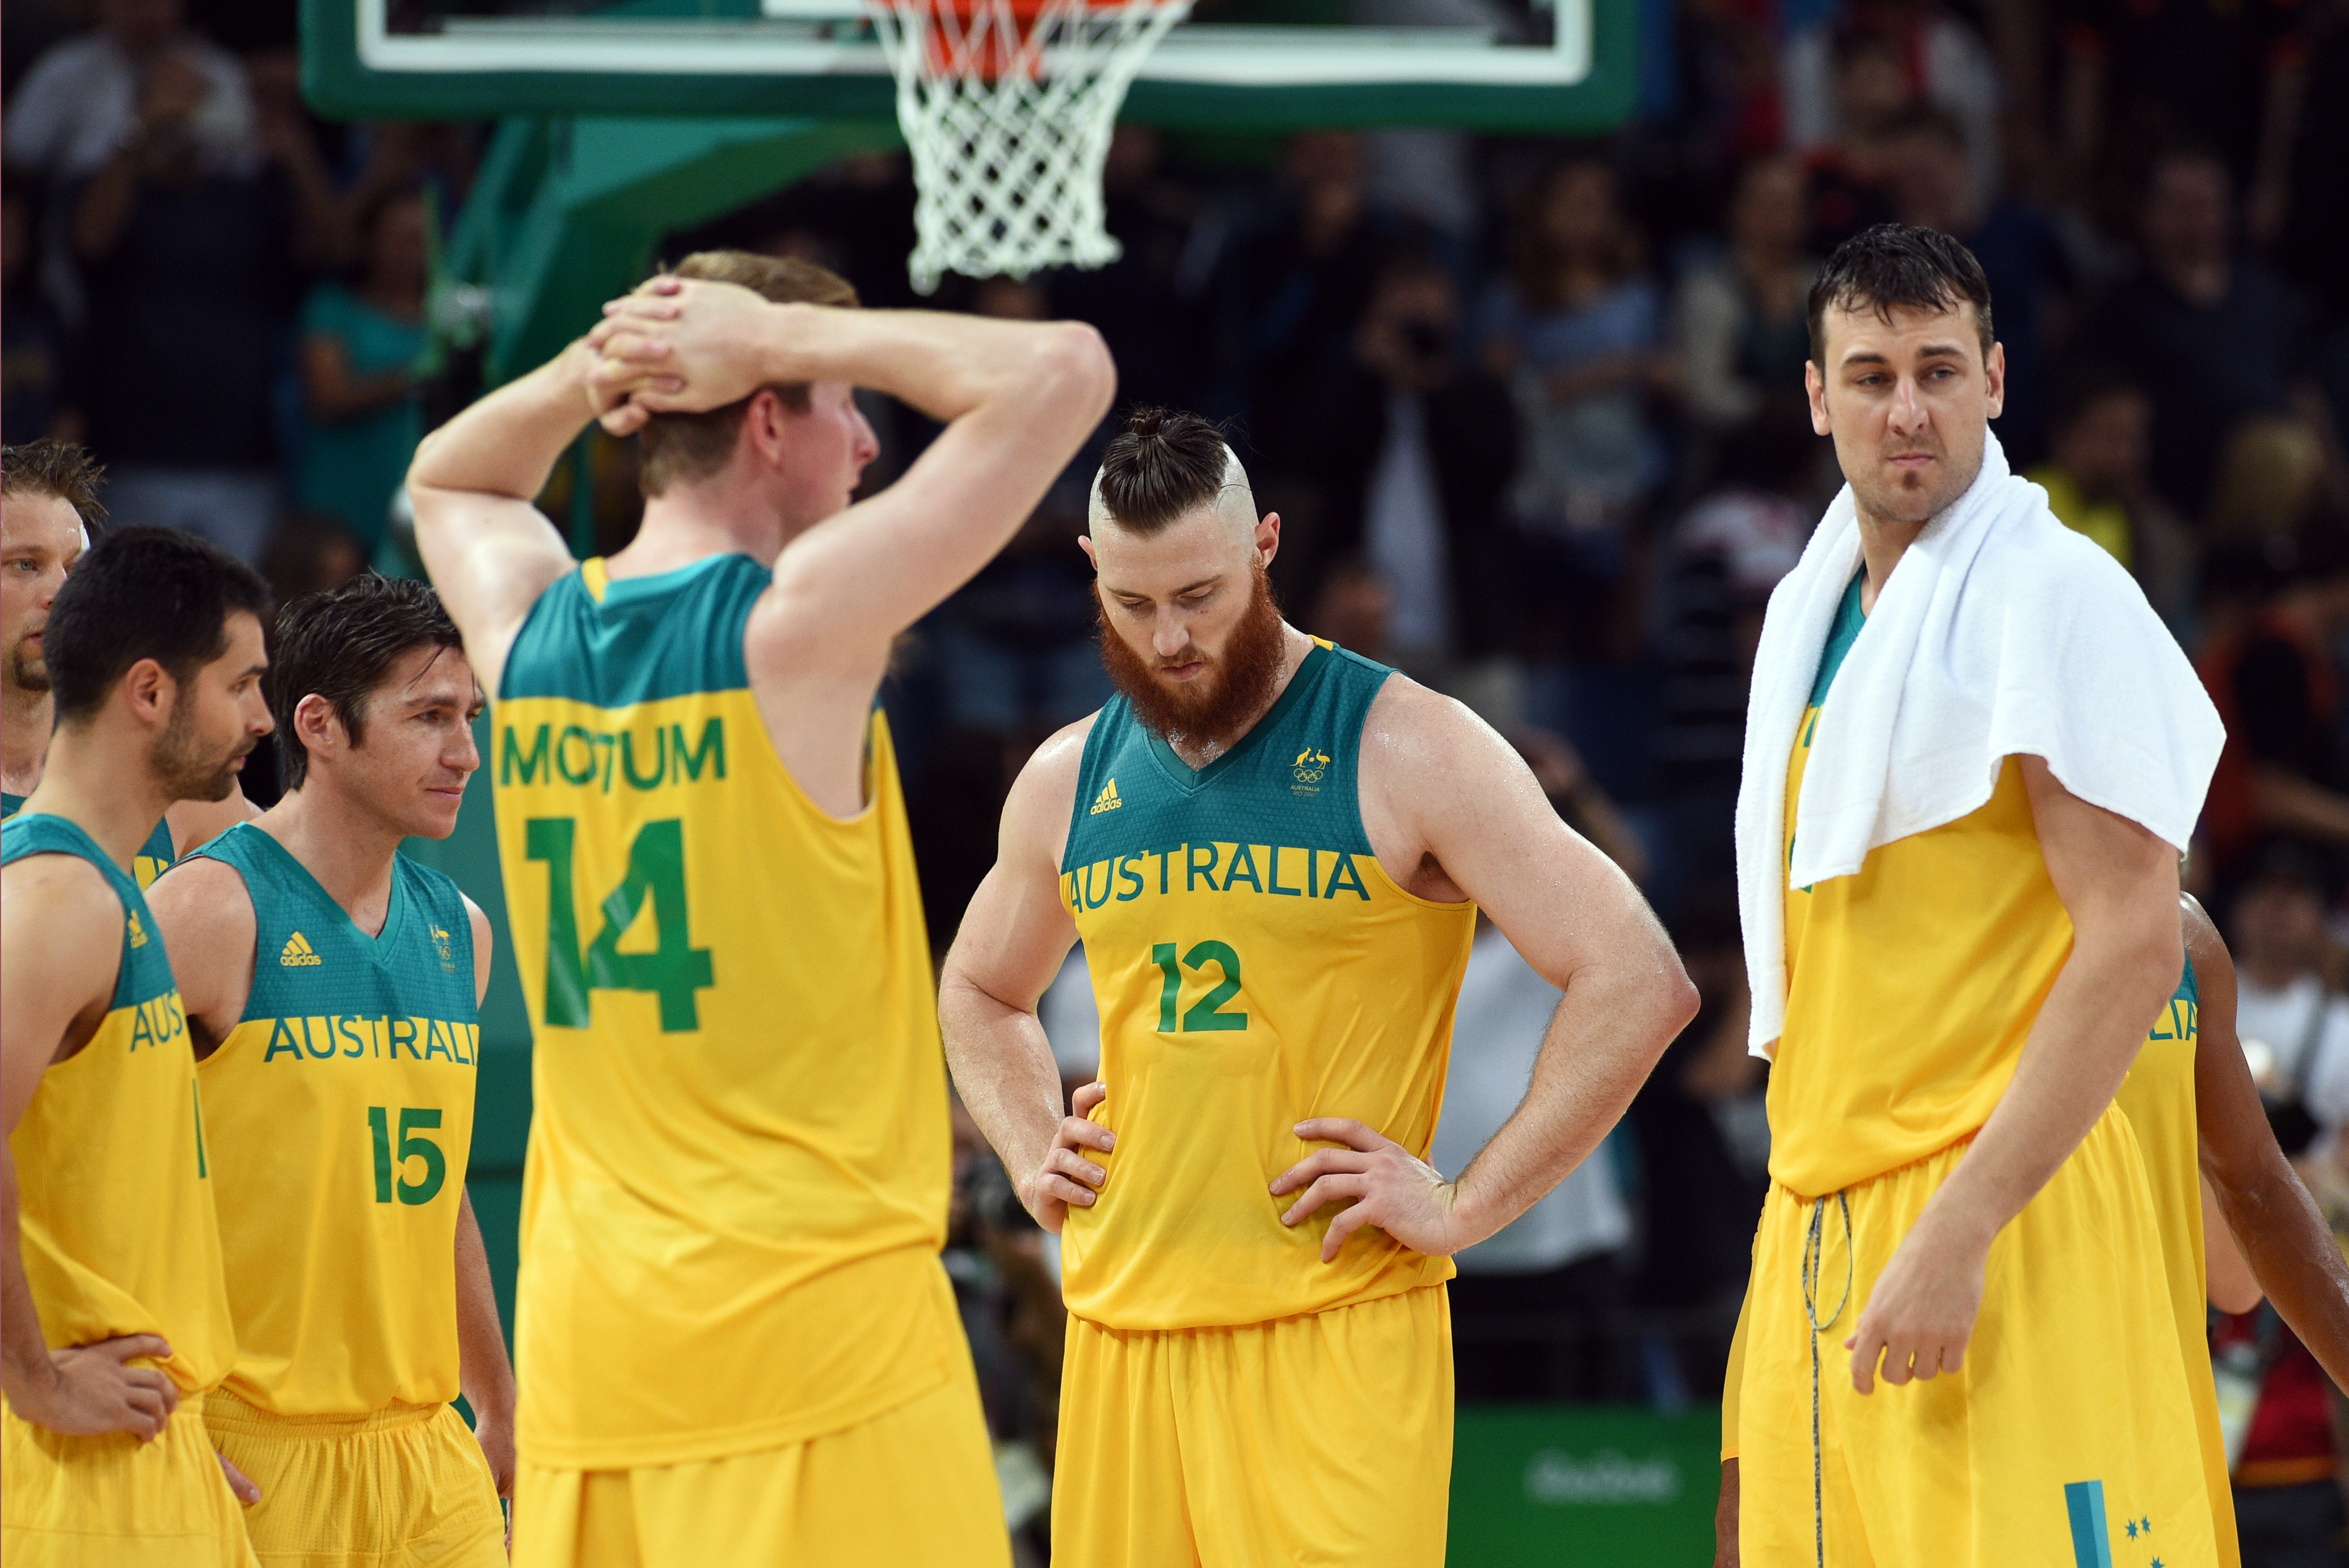 Heartbreak As Medal Ripped From Boomers Grasp Indaily